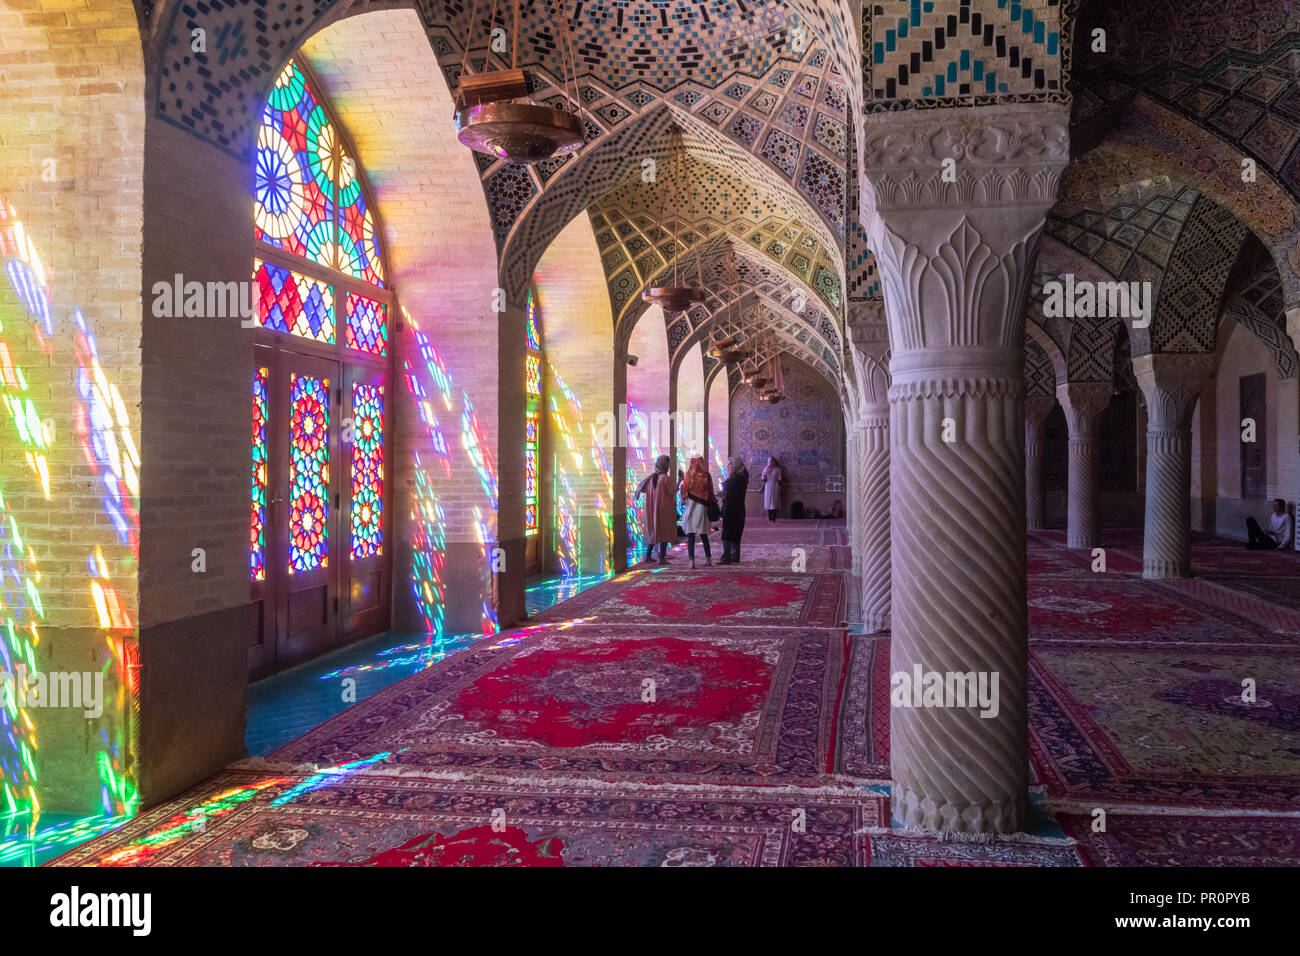 Shiraz, Iran - June 2018: Inside of Nasir ol Molk Mosque also known as Pink Mosque, one of the most famous mosques in Shiraz - Stock Image